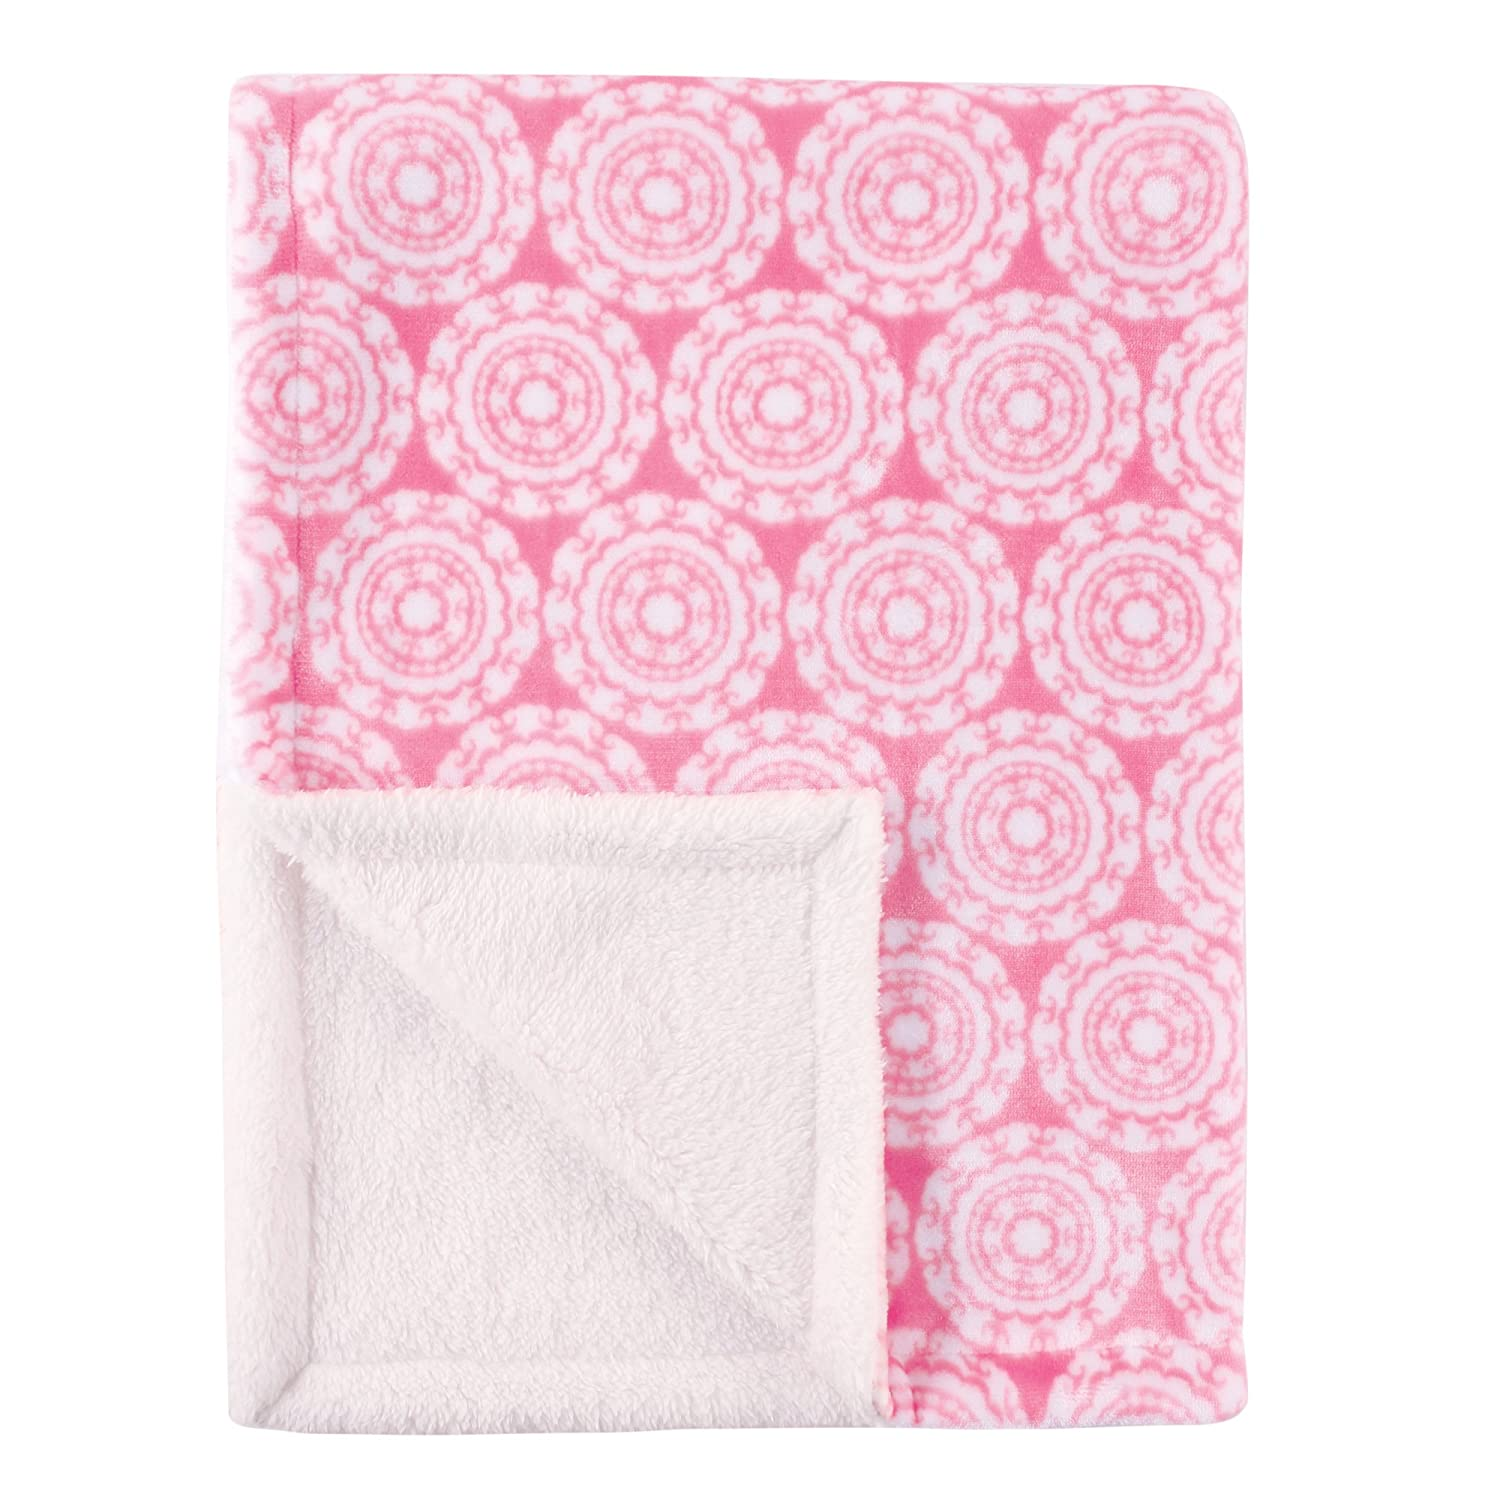 Hudson Baby Blanket with Sherpa Backing, Medallion, One Size